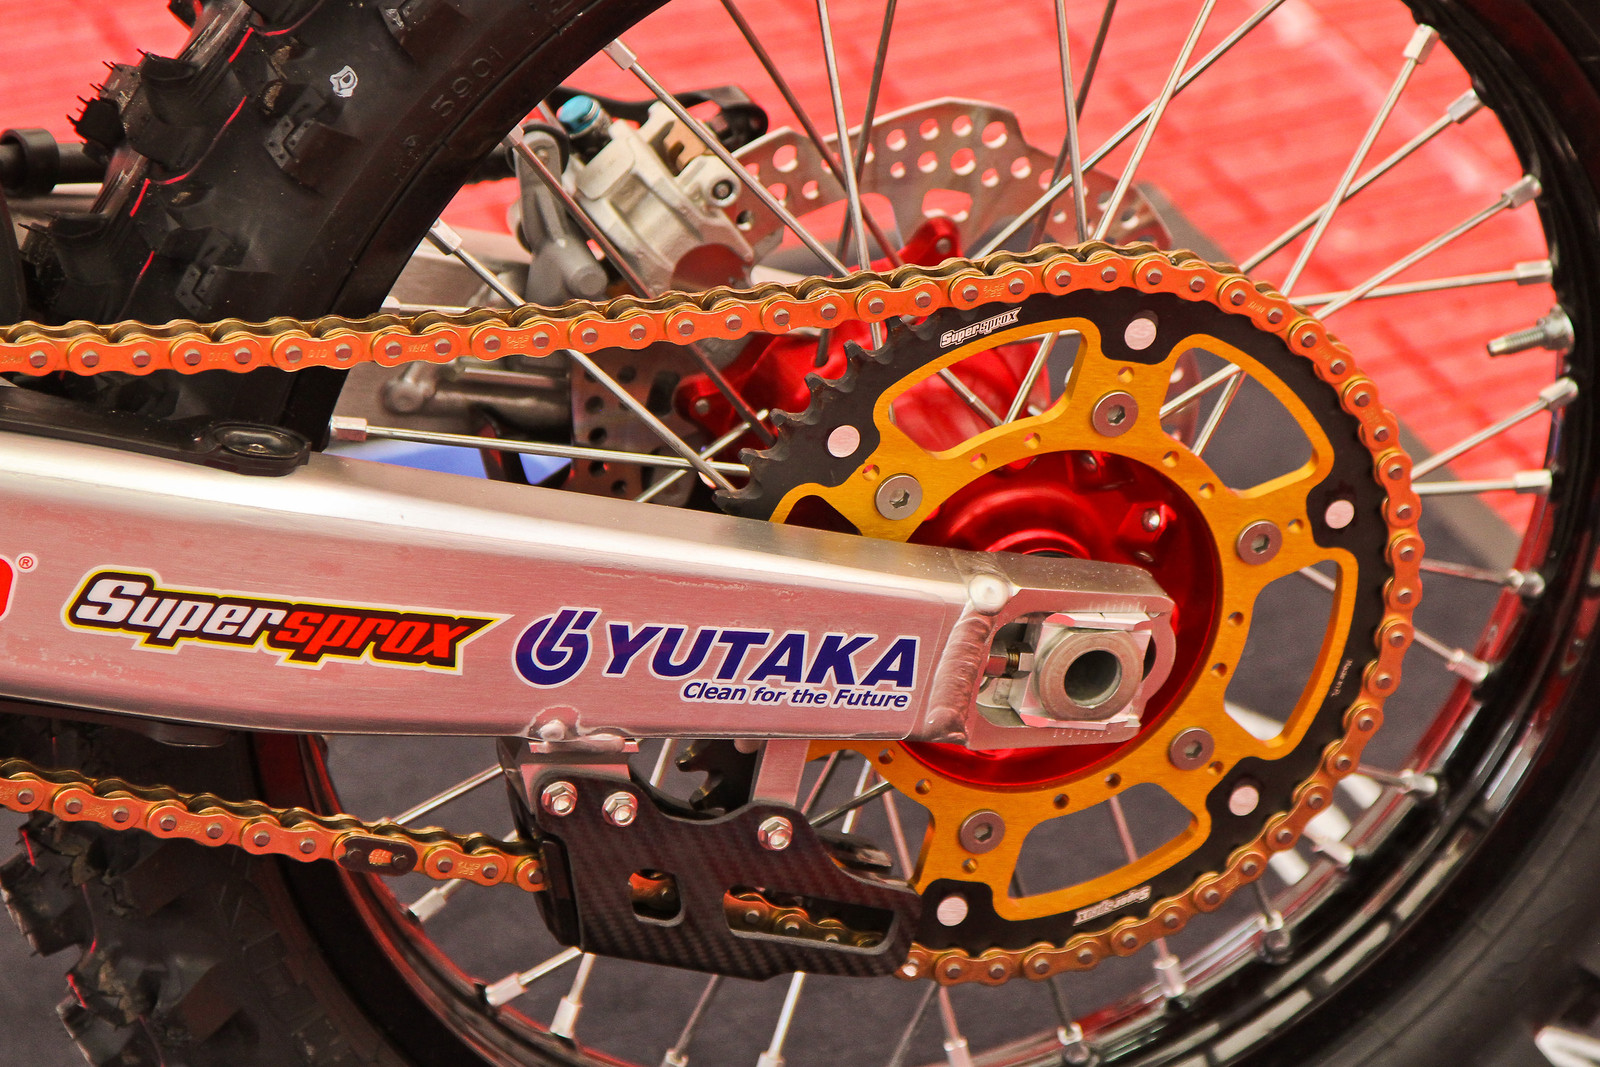 2018 Honda CRF250RW - Those sprockets aren't real... - ayearinmx - Motocross Pictures - Vital MX